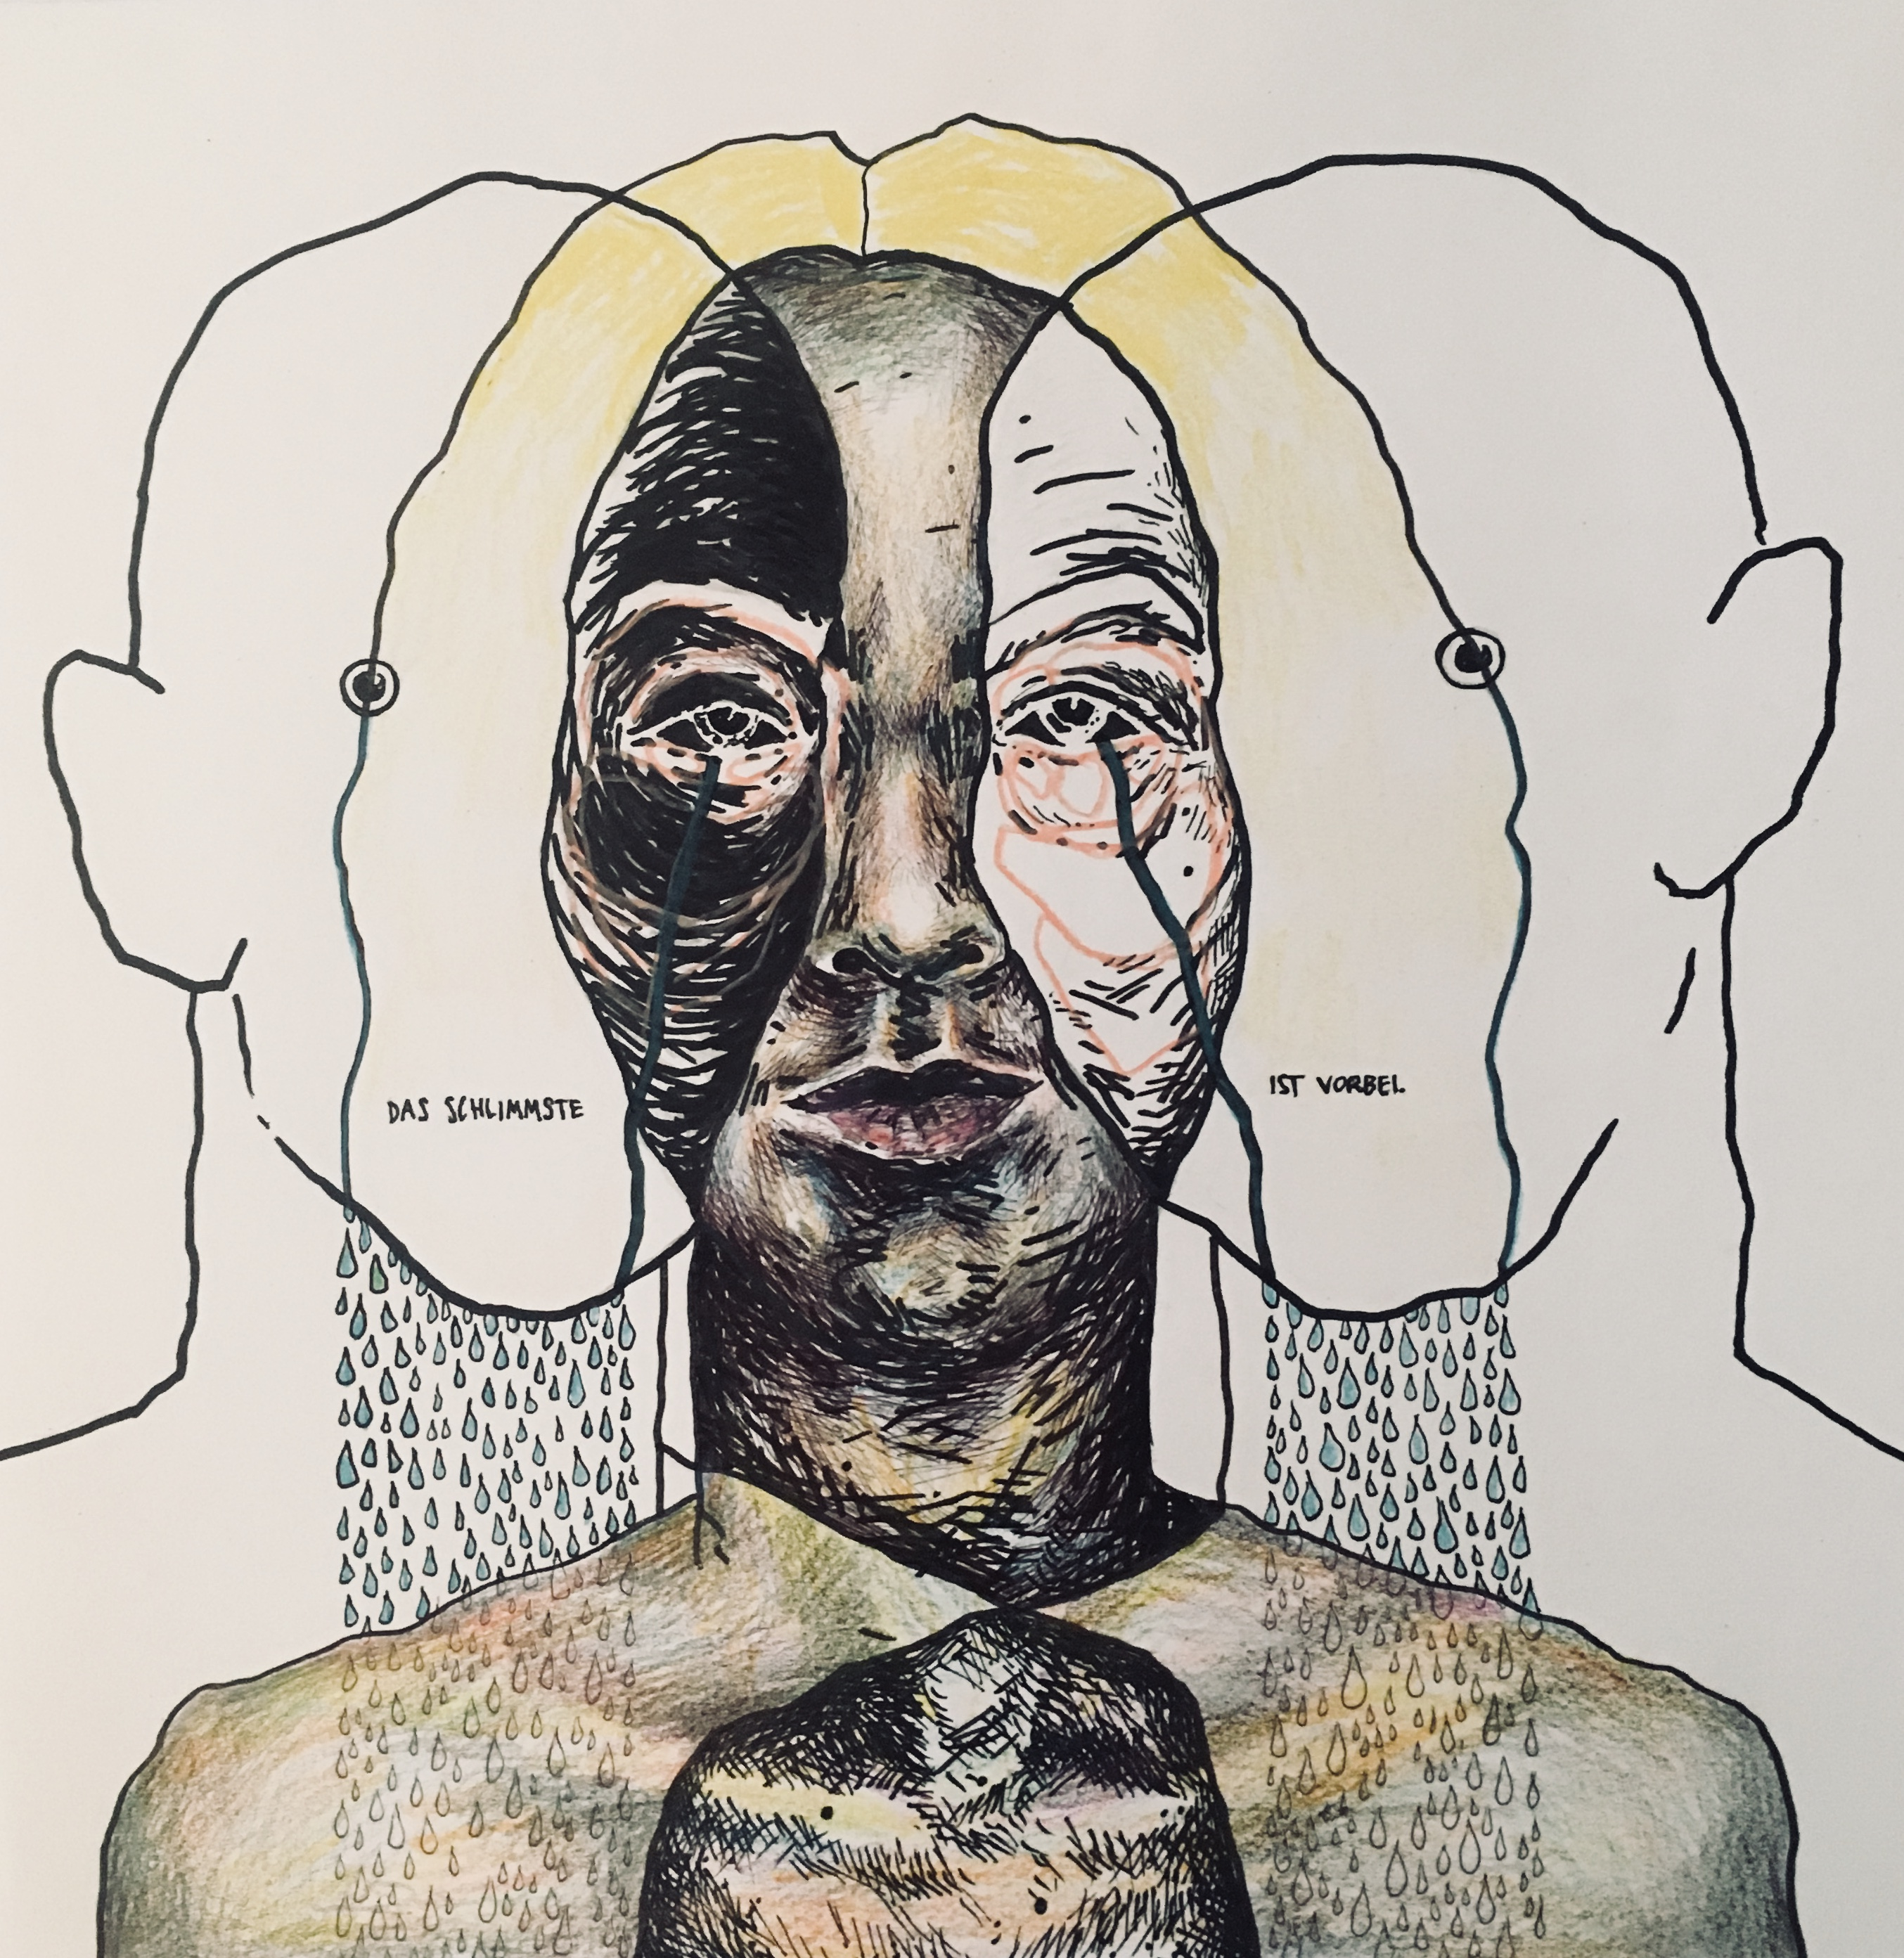 Pen on Paper, 30 x 30 cm, 2019